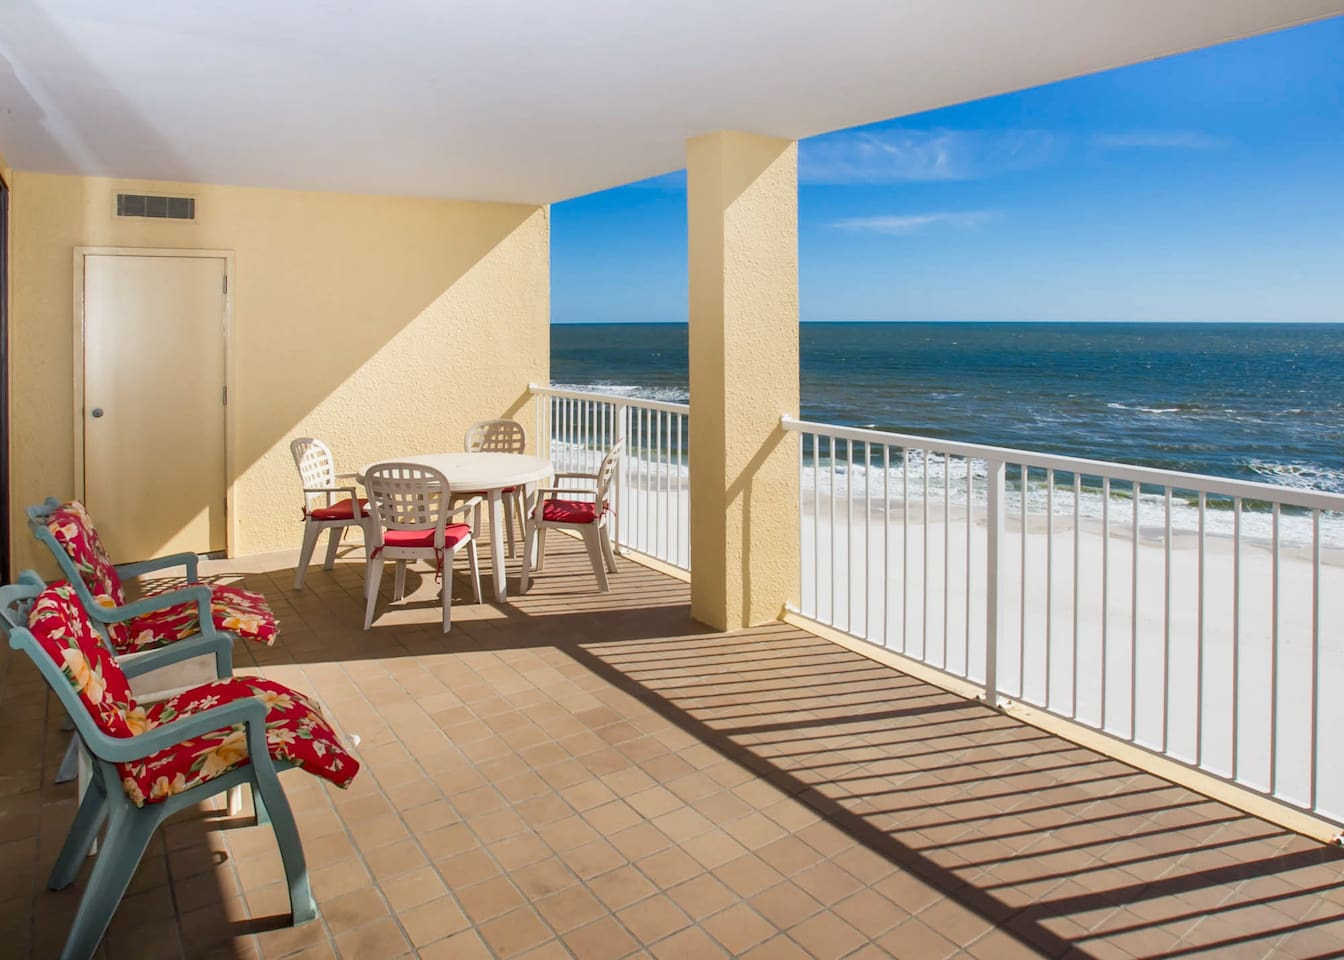 Welcome to Orange Beach! This condo is professionally managed by TurnKey Vacation Rentals.